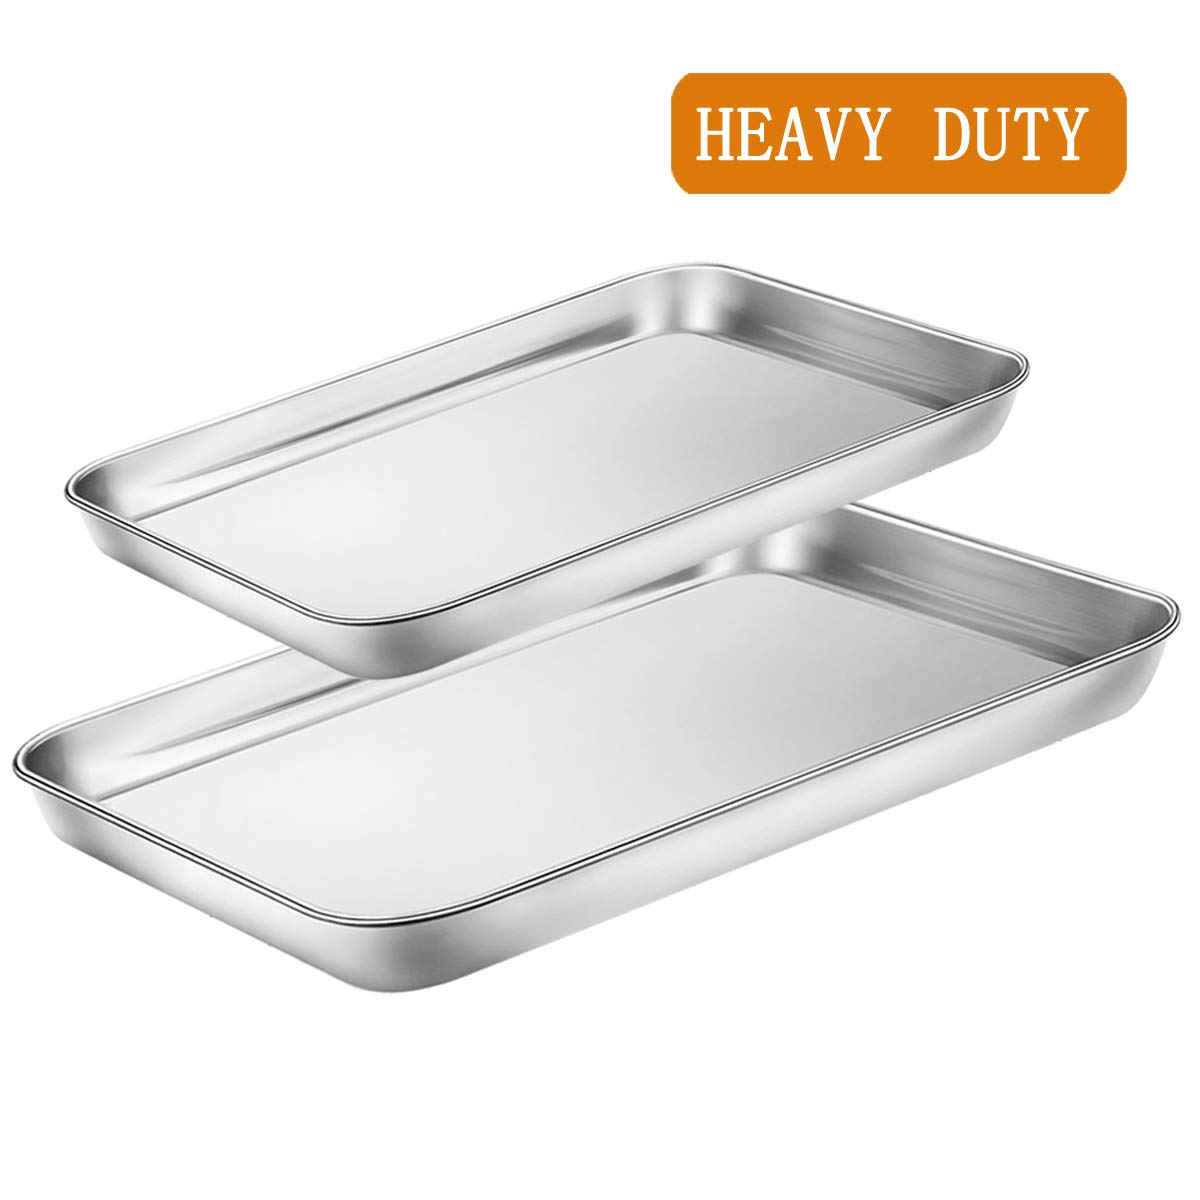 Toaster Oven Tray Pans Set of 2,BYkooc Small Stainless Steel Baking Sheet Pan for Cookie,Non Toxic&Healthy,Easy Clean&Mirror Finish,Dishwasher Safe,one 9 x 7 x 1 inch and one 10 x 8 x 1 inch